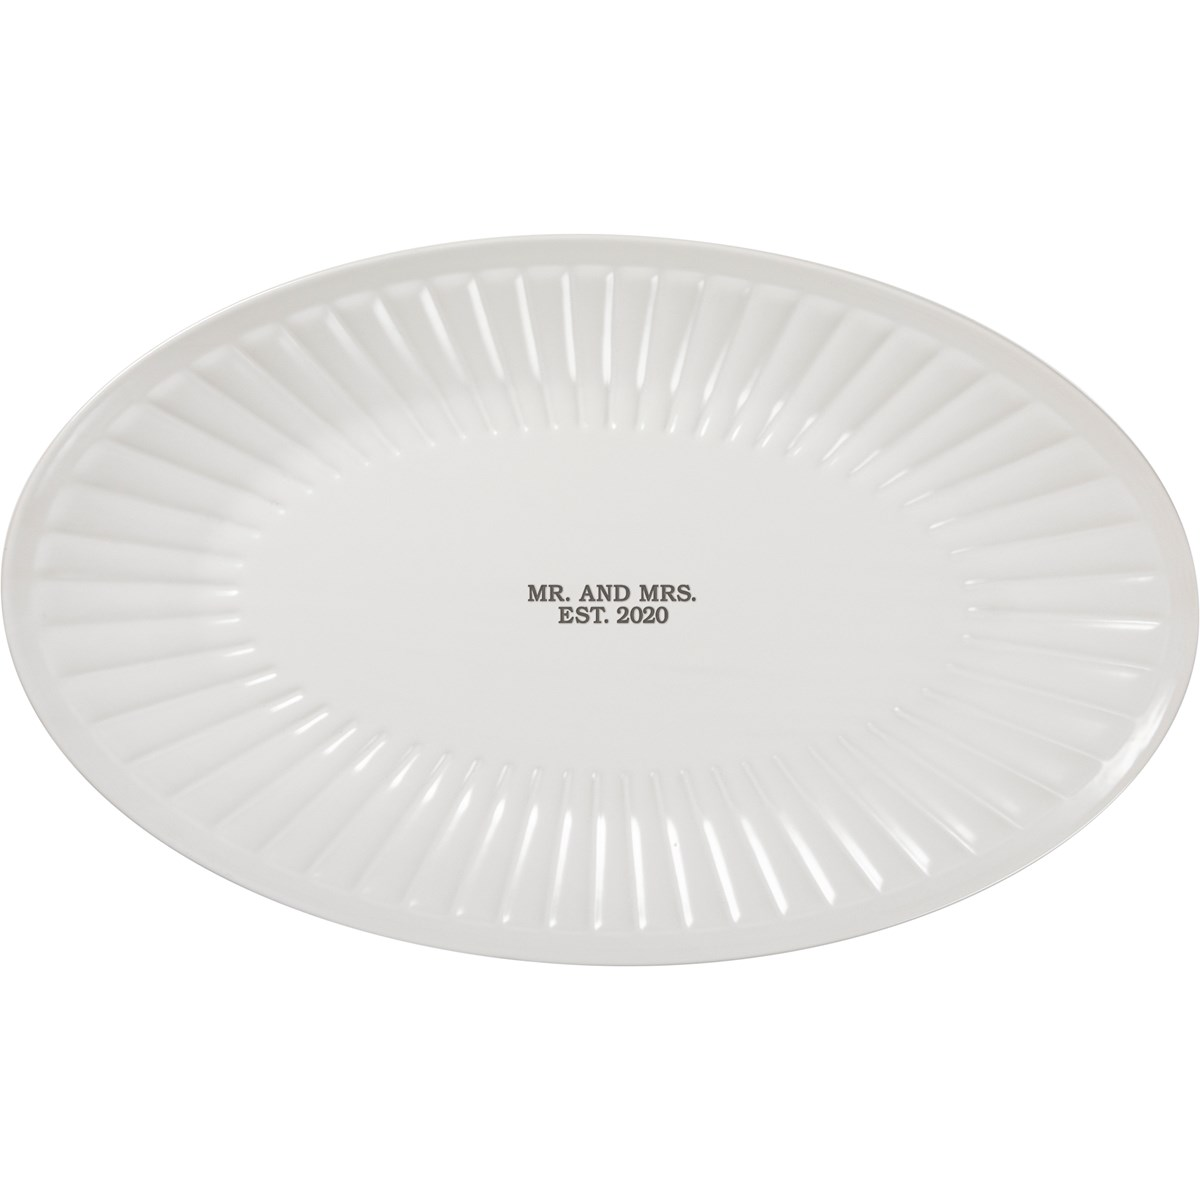 "Platter - Mr. And Mrs. Est. 2020 - 17"" x 10.50"" - Stoneware"